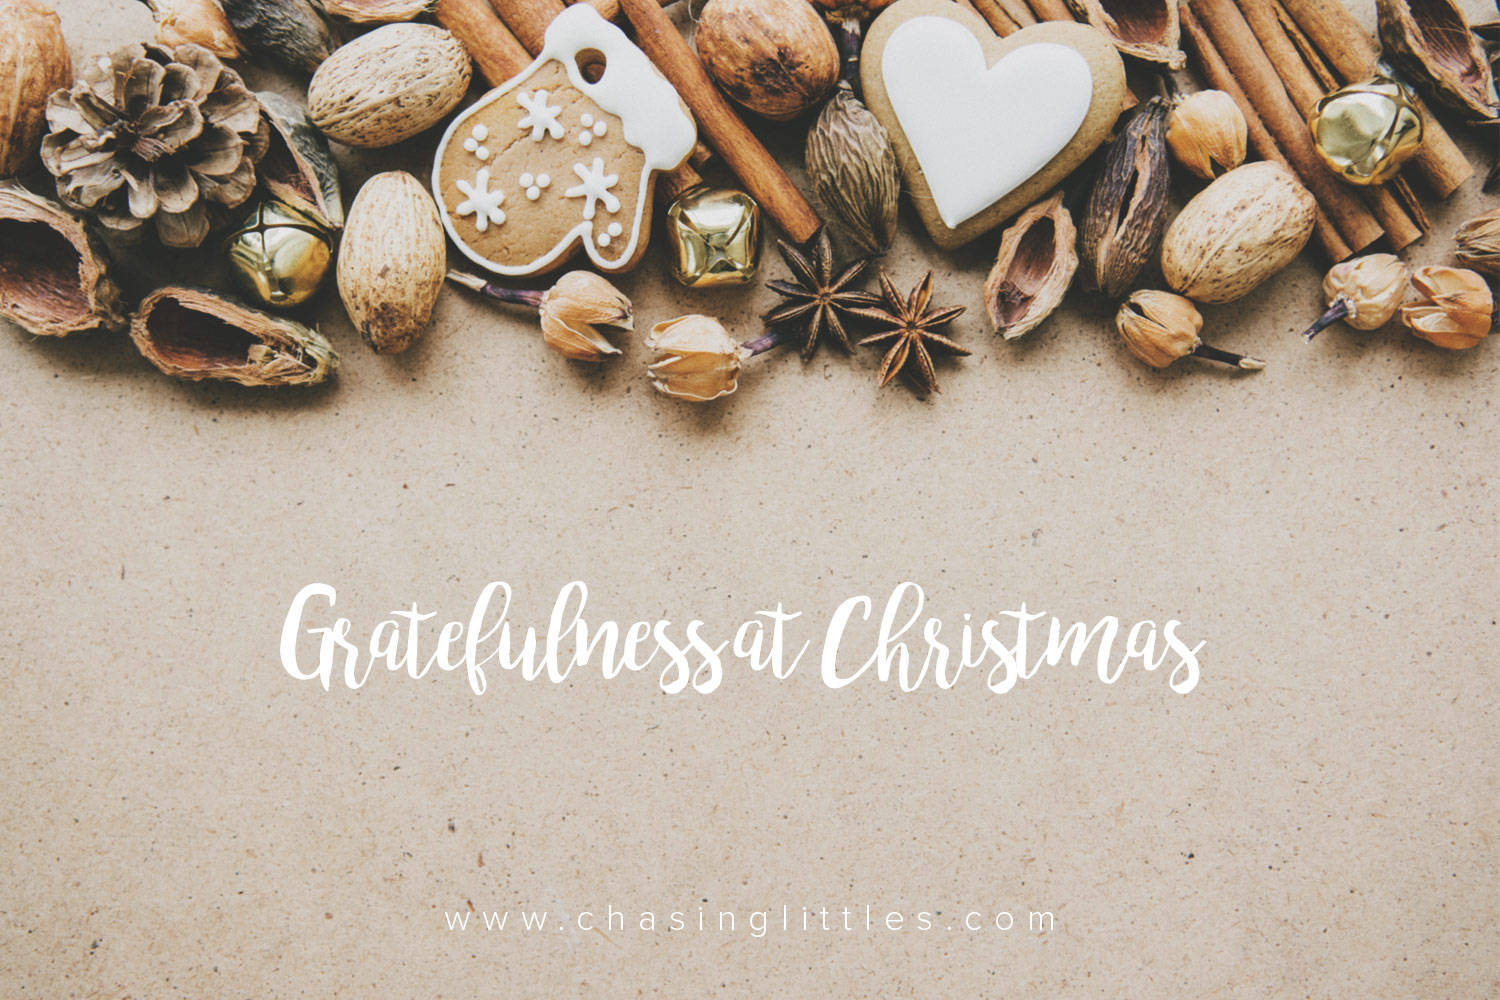 gratefulness at christmas